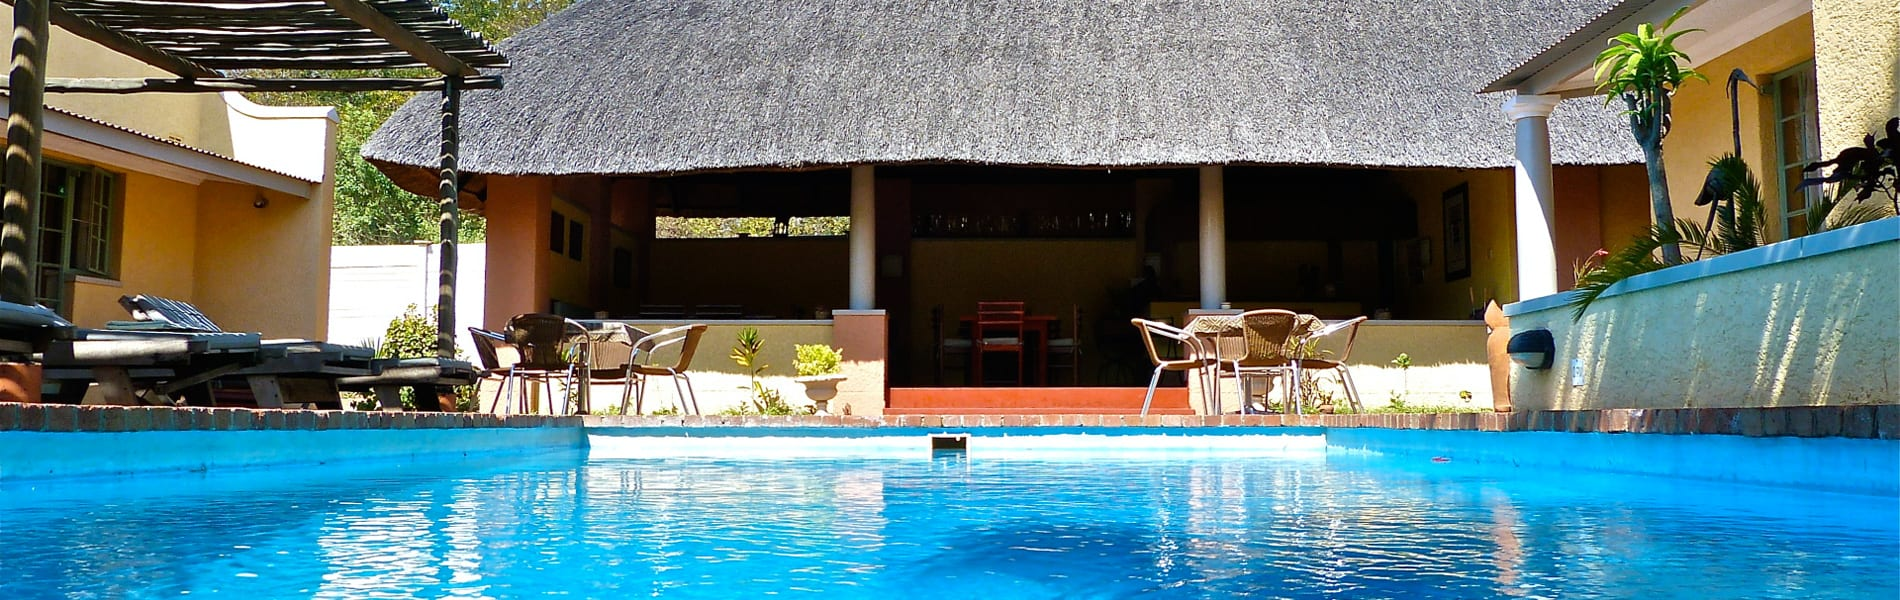 Amadeus Guesthouse pool